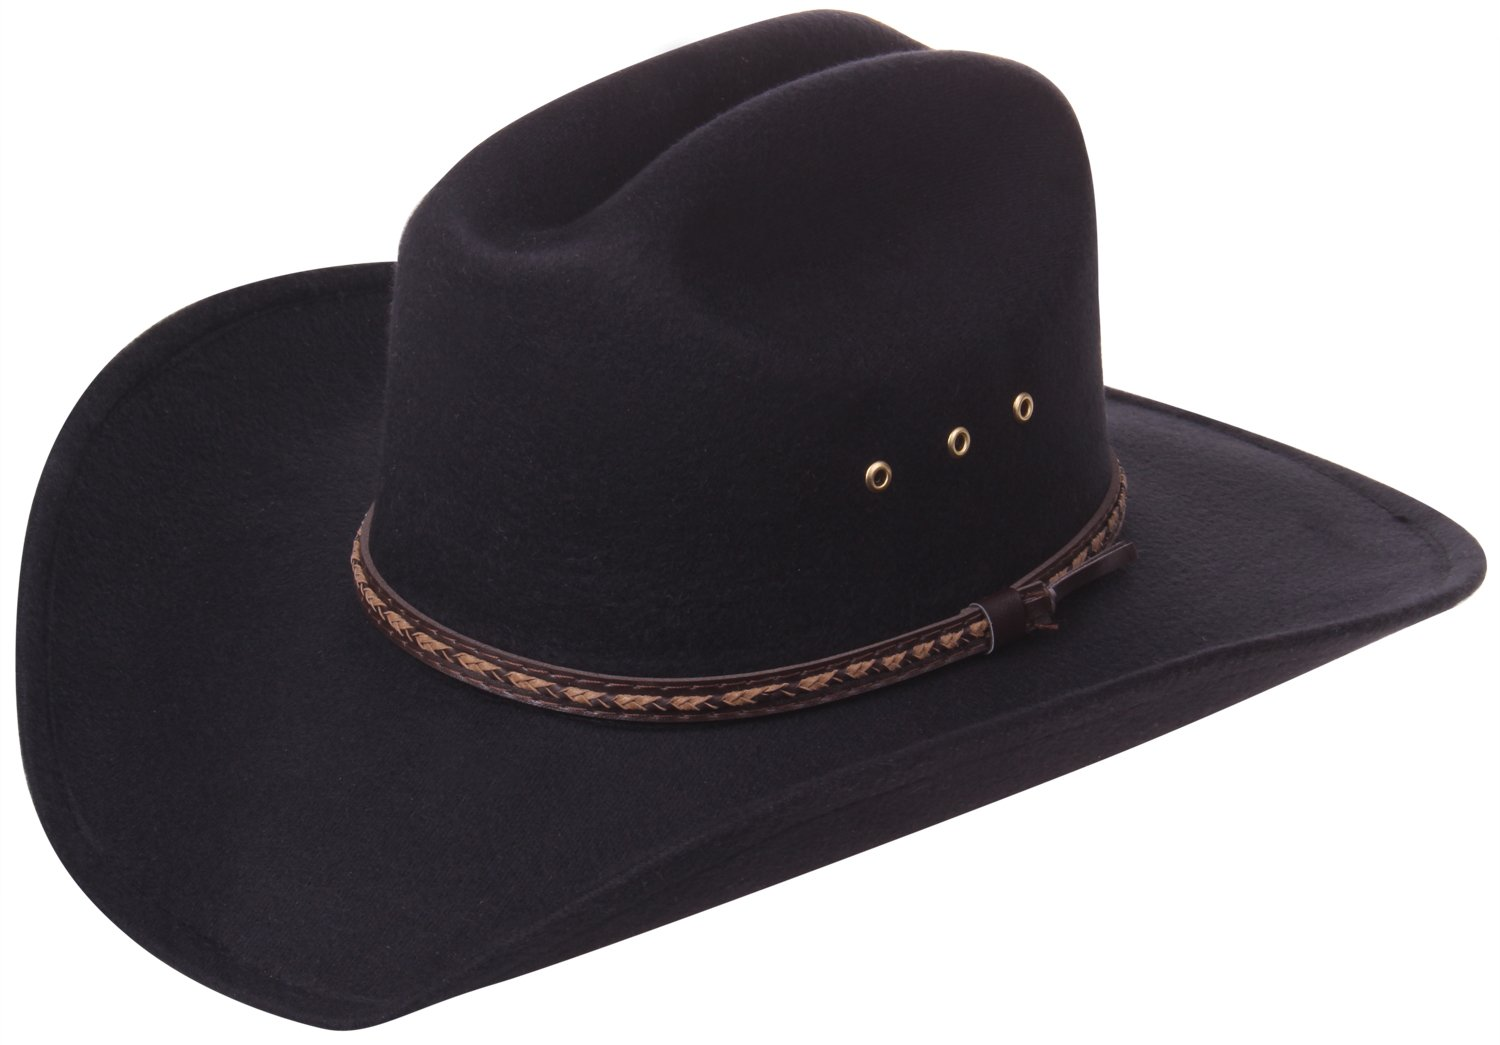 Enimay Western Outback Cowboy Hat Men's Women's Style Felt Canvass Plain Black Large | X-Large